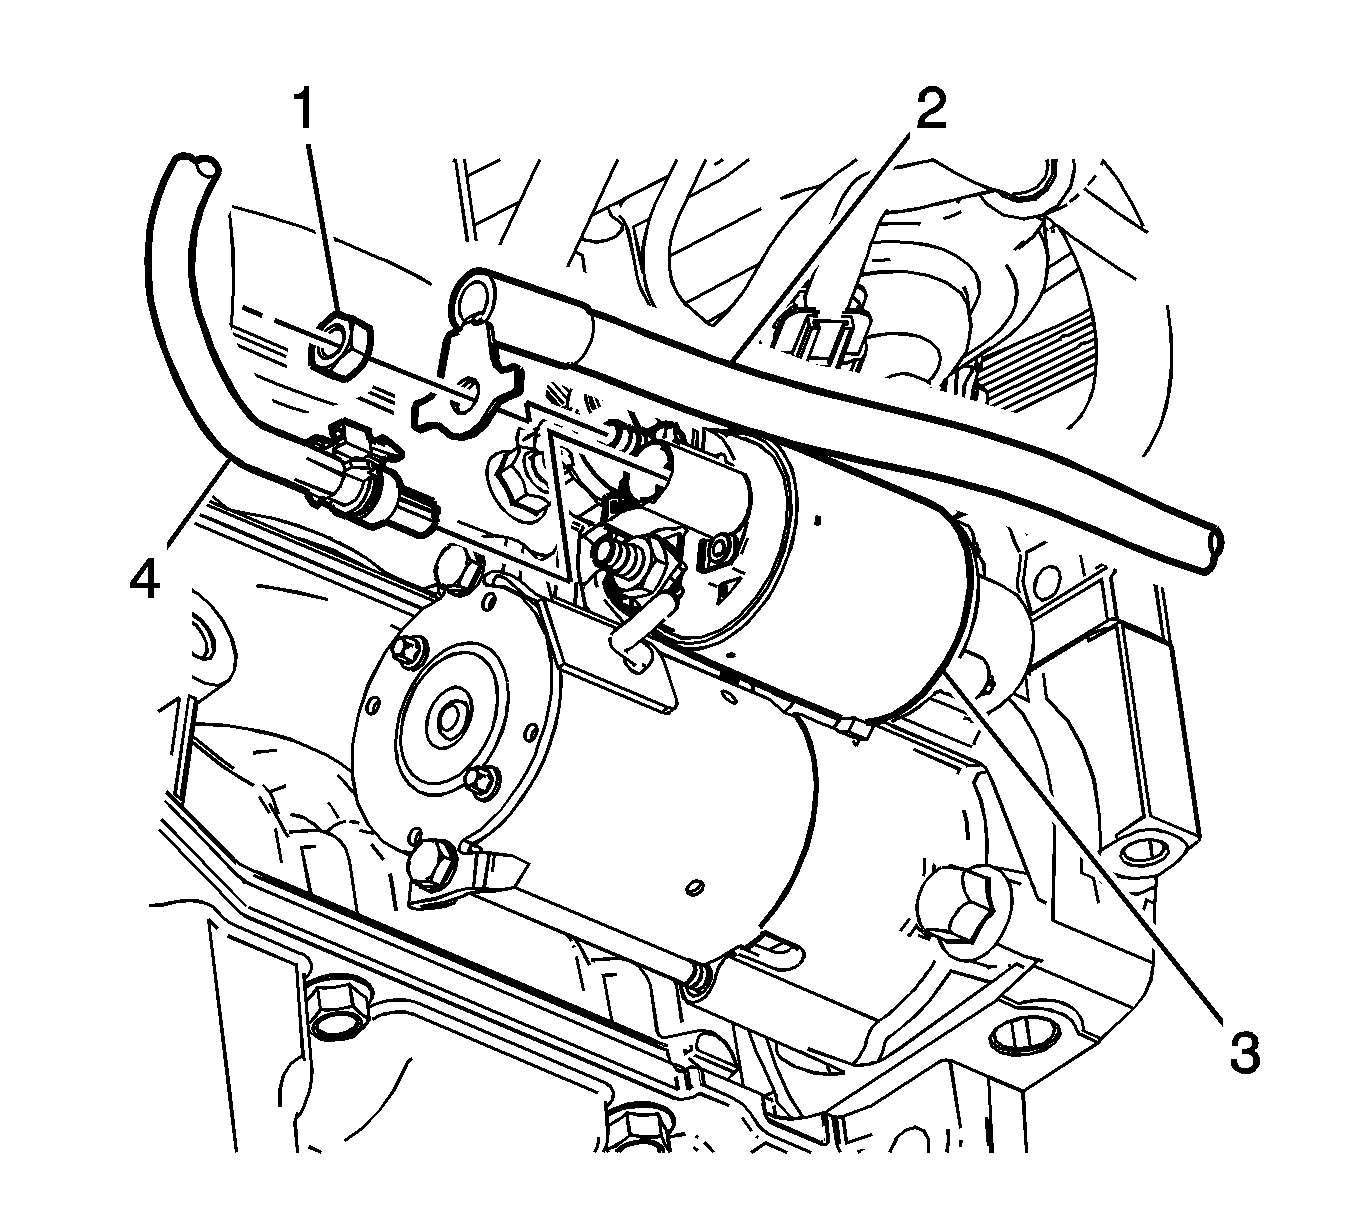 Chevy Cobalt Alternator Wiring Diagram